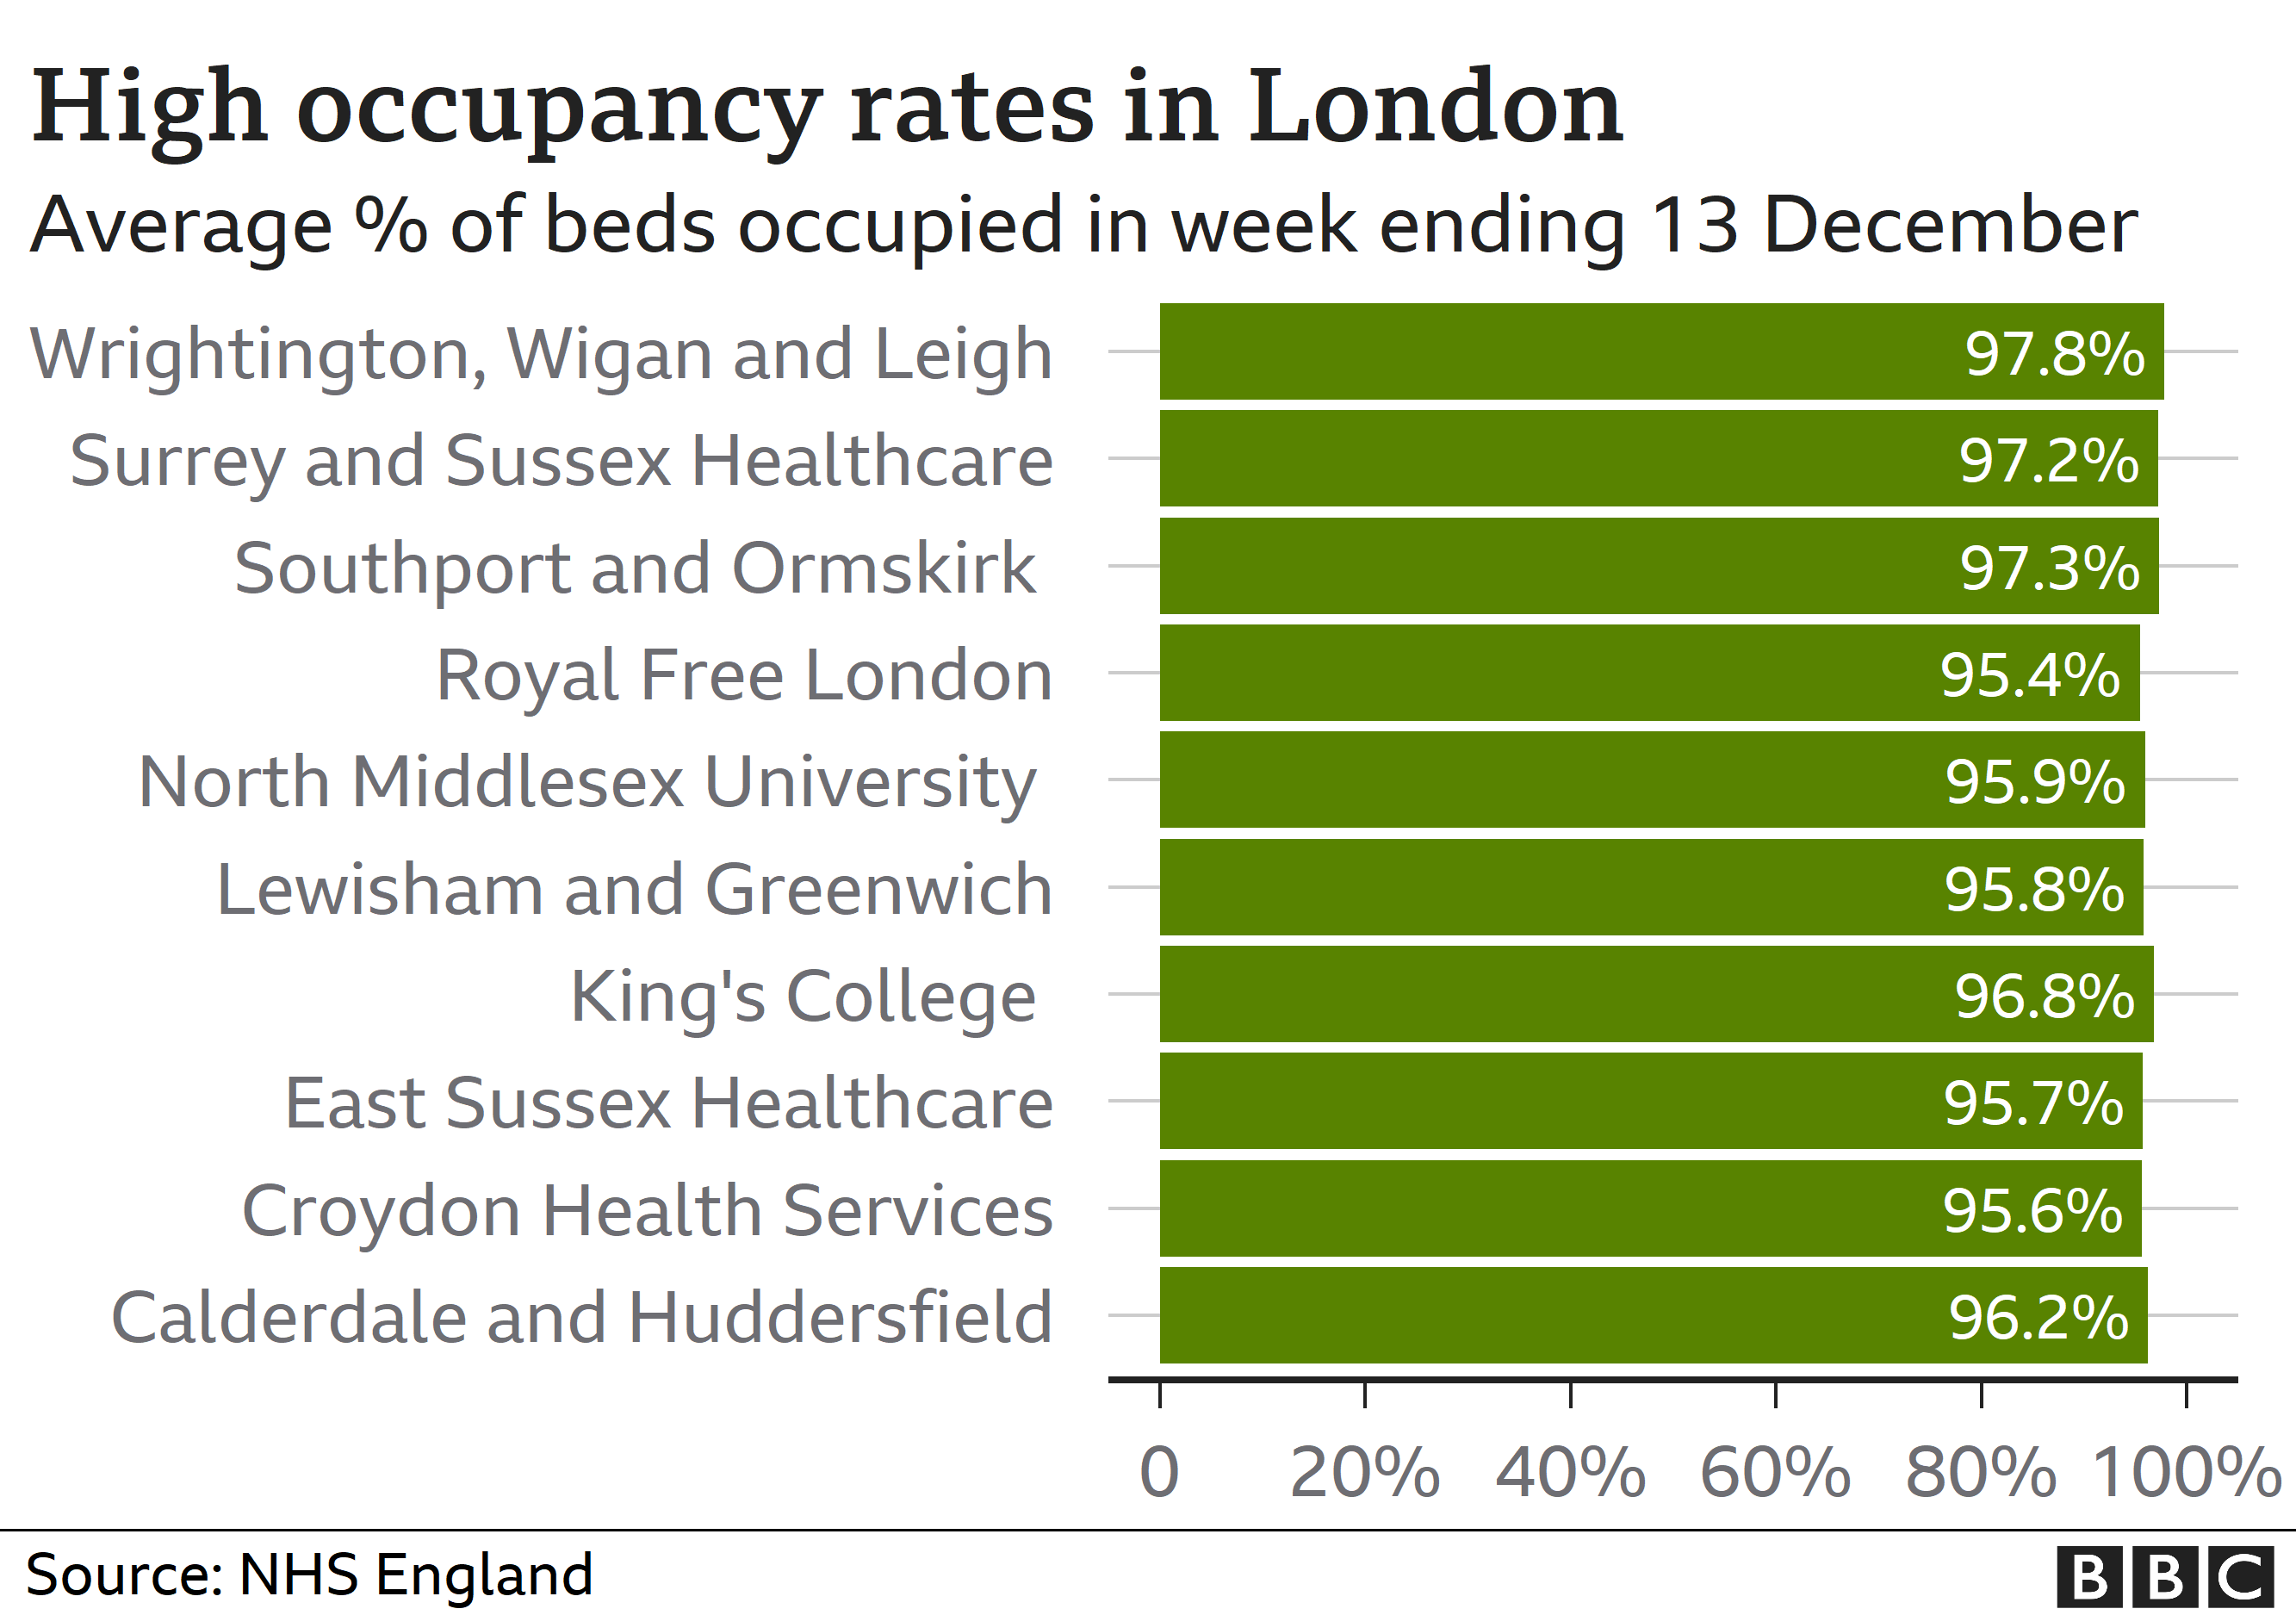 High bed occupancy rates in London